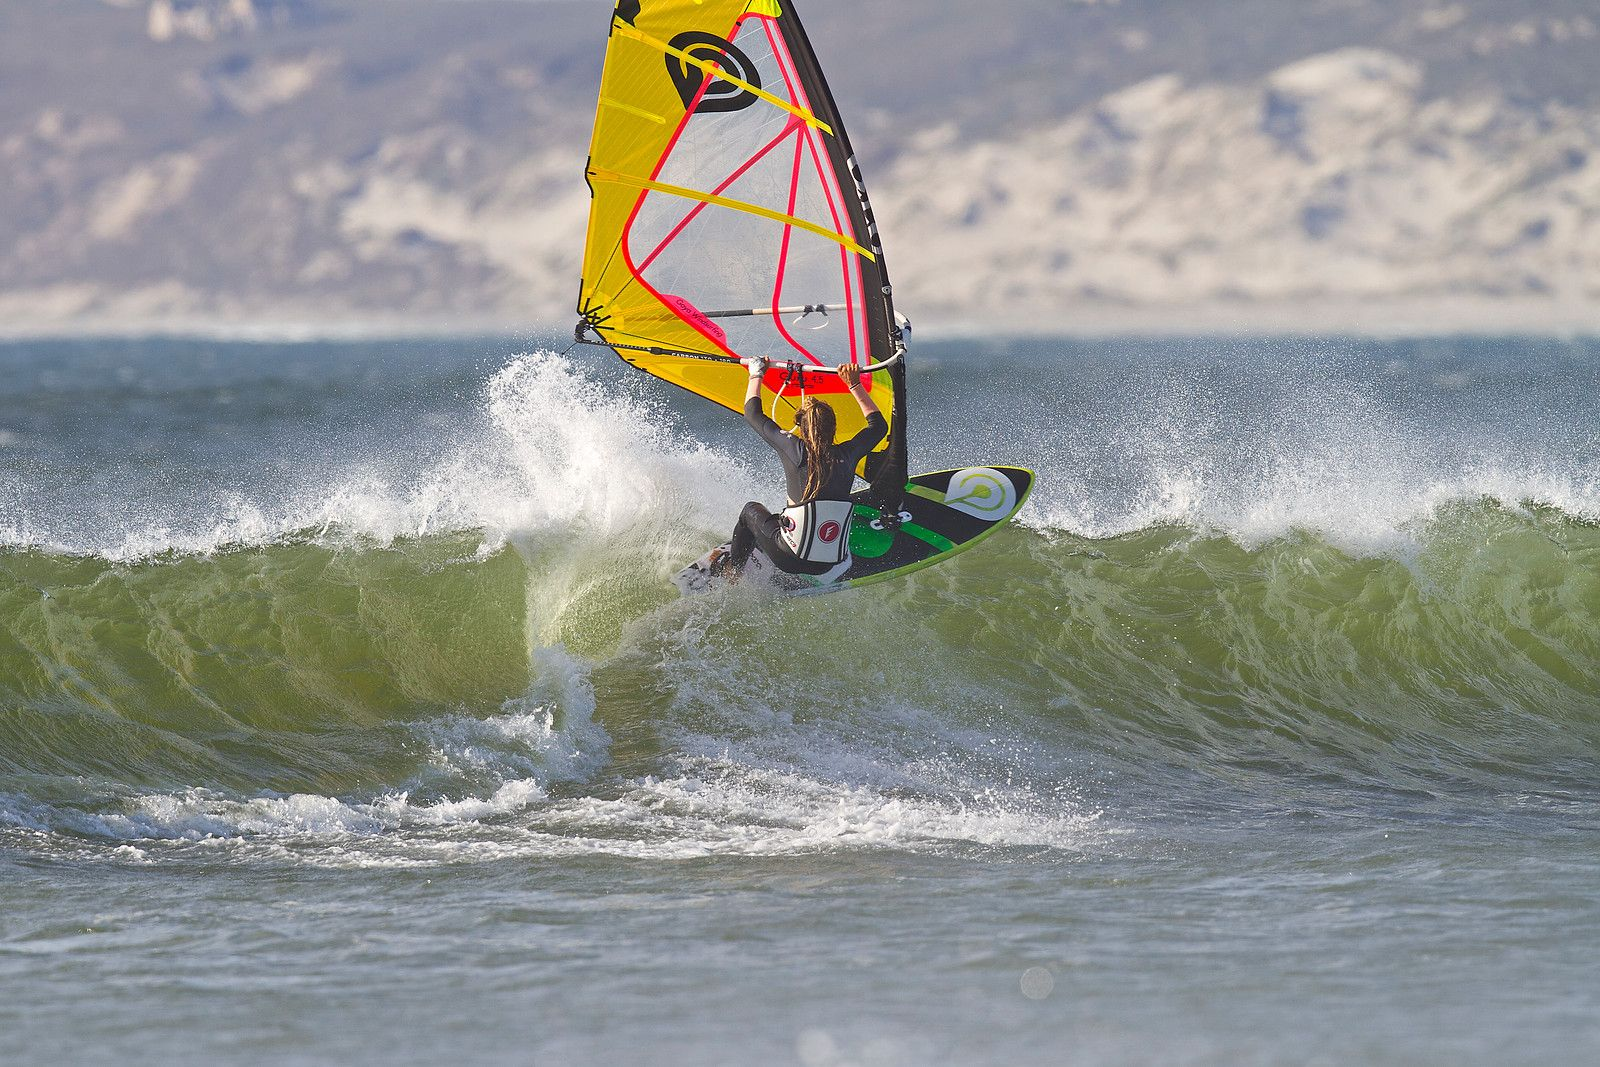 Tony Frey windsurfing and riding a wave on a Goya board